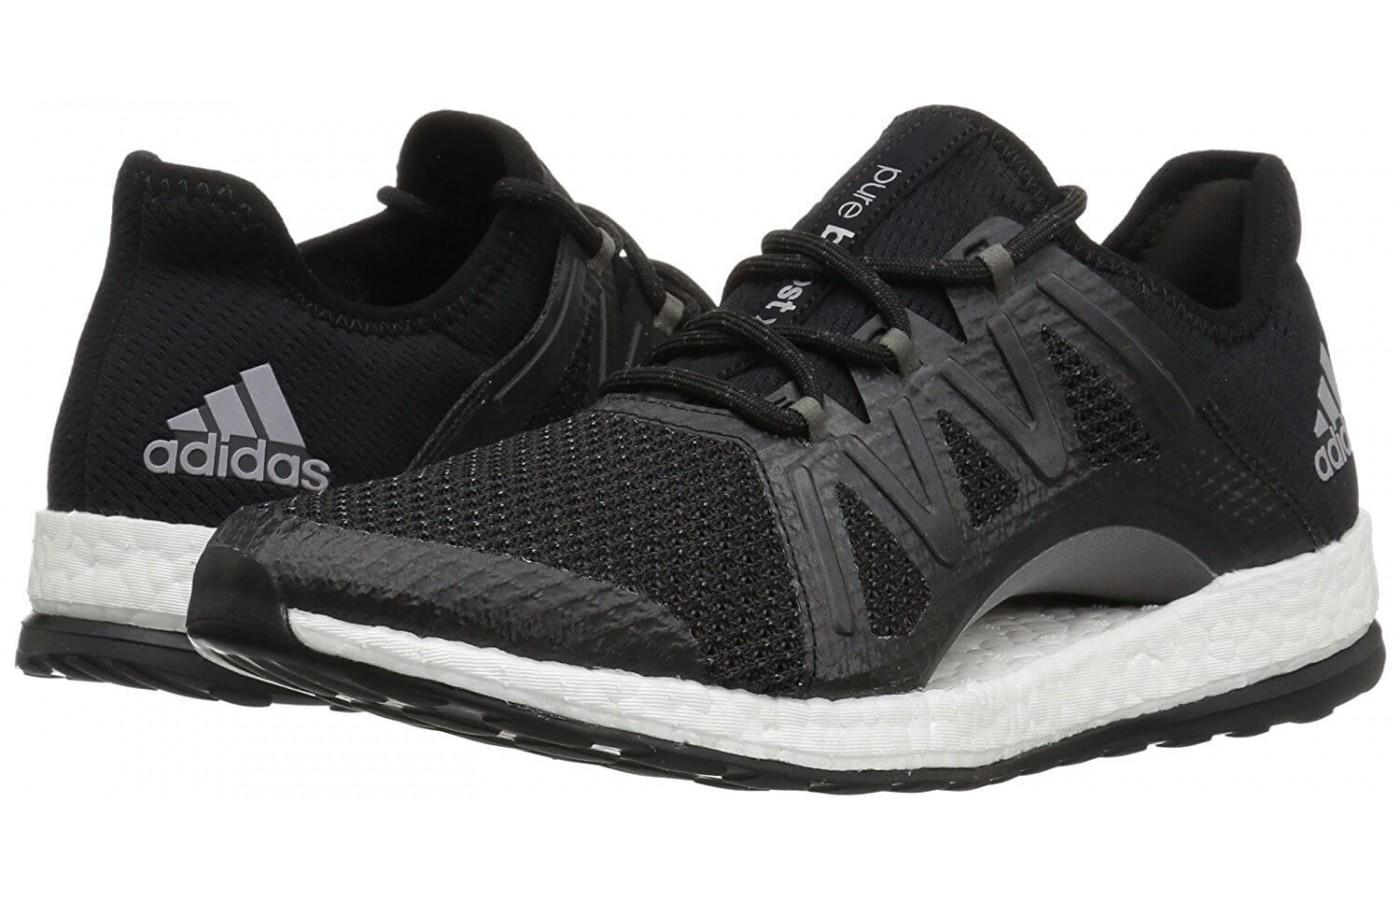 adidas athletic sneakers cheap > OFF69% The Largest Catalog Catalog Largest Discounts f8808c